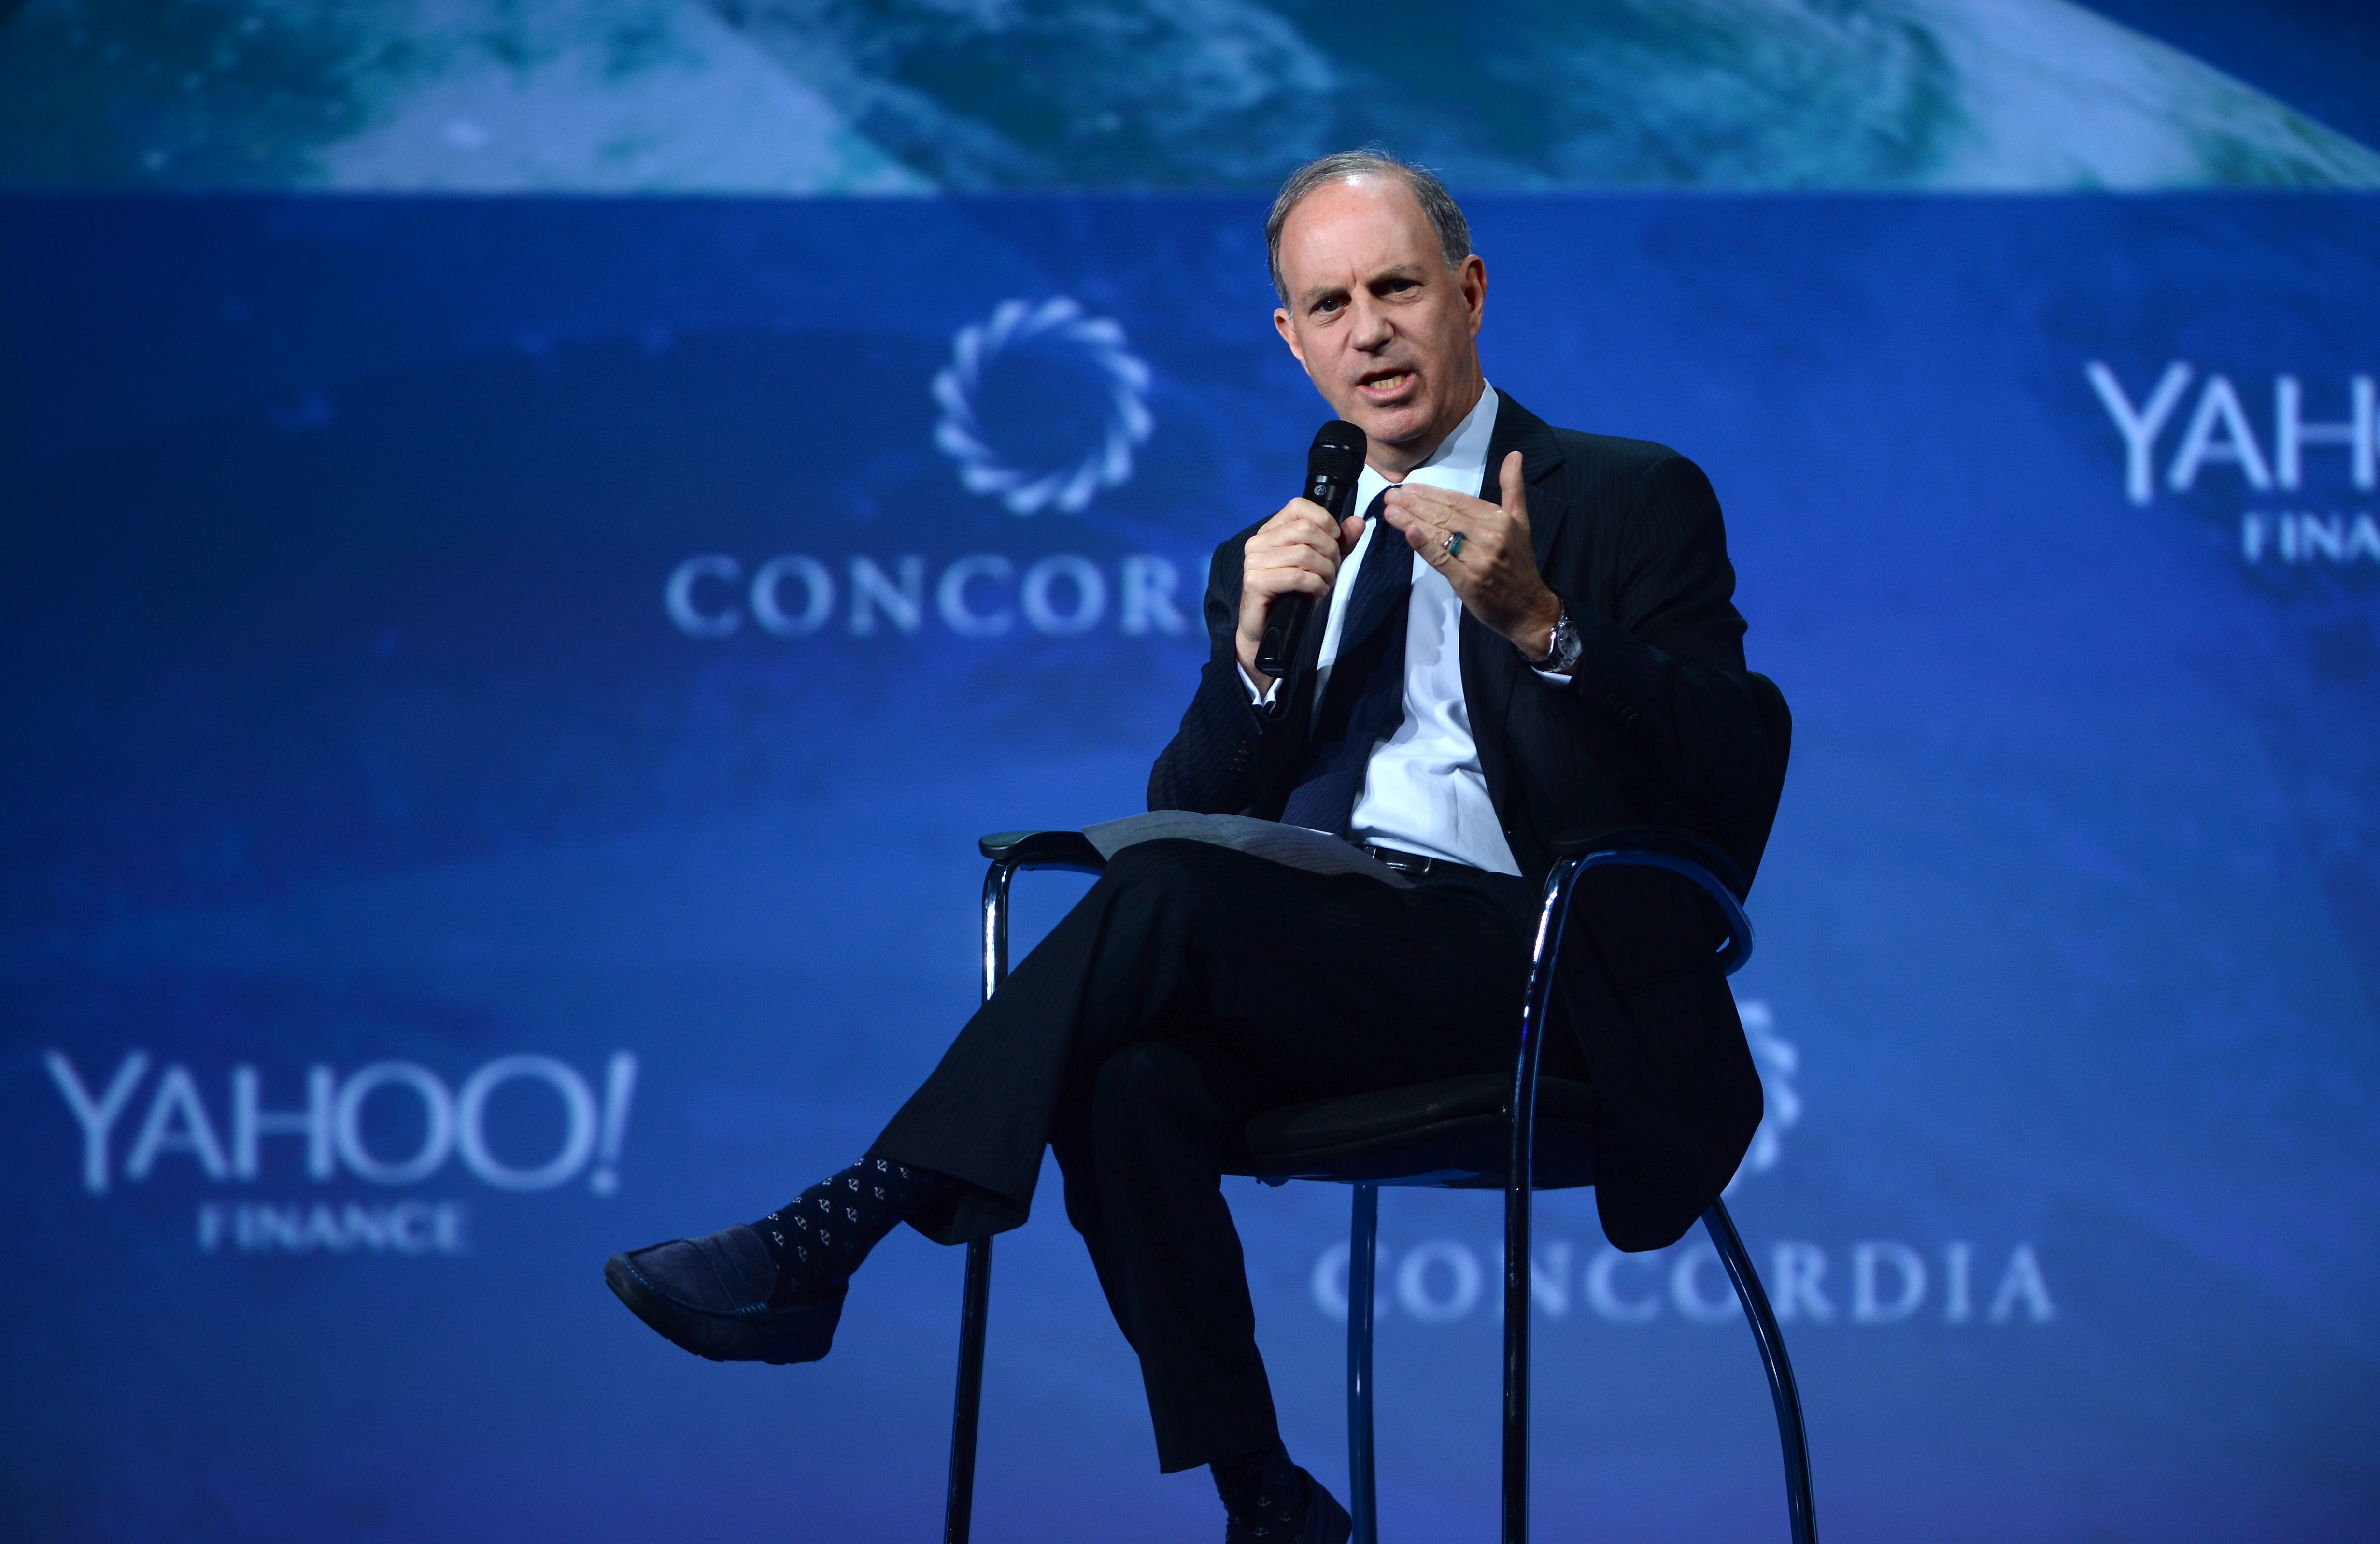 NEW YORK, NY - SEPTEMBER 20: Yahoo! Finance Editor-in-Chief Andy Serwer speaks at the 2016 Concordia Summit - Day 2 at Grand Hyatt New York on September 20, 2016 in New York City. Riccardo Savi/Getty Images for Concordia Summit/AFP